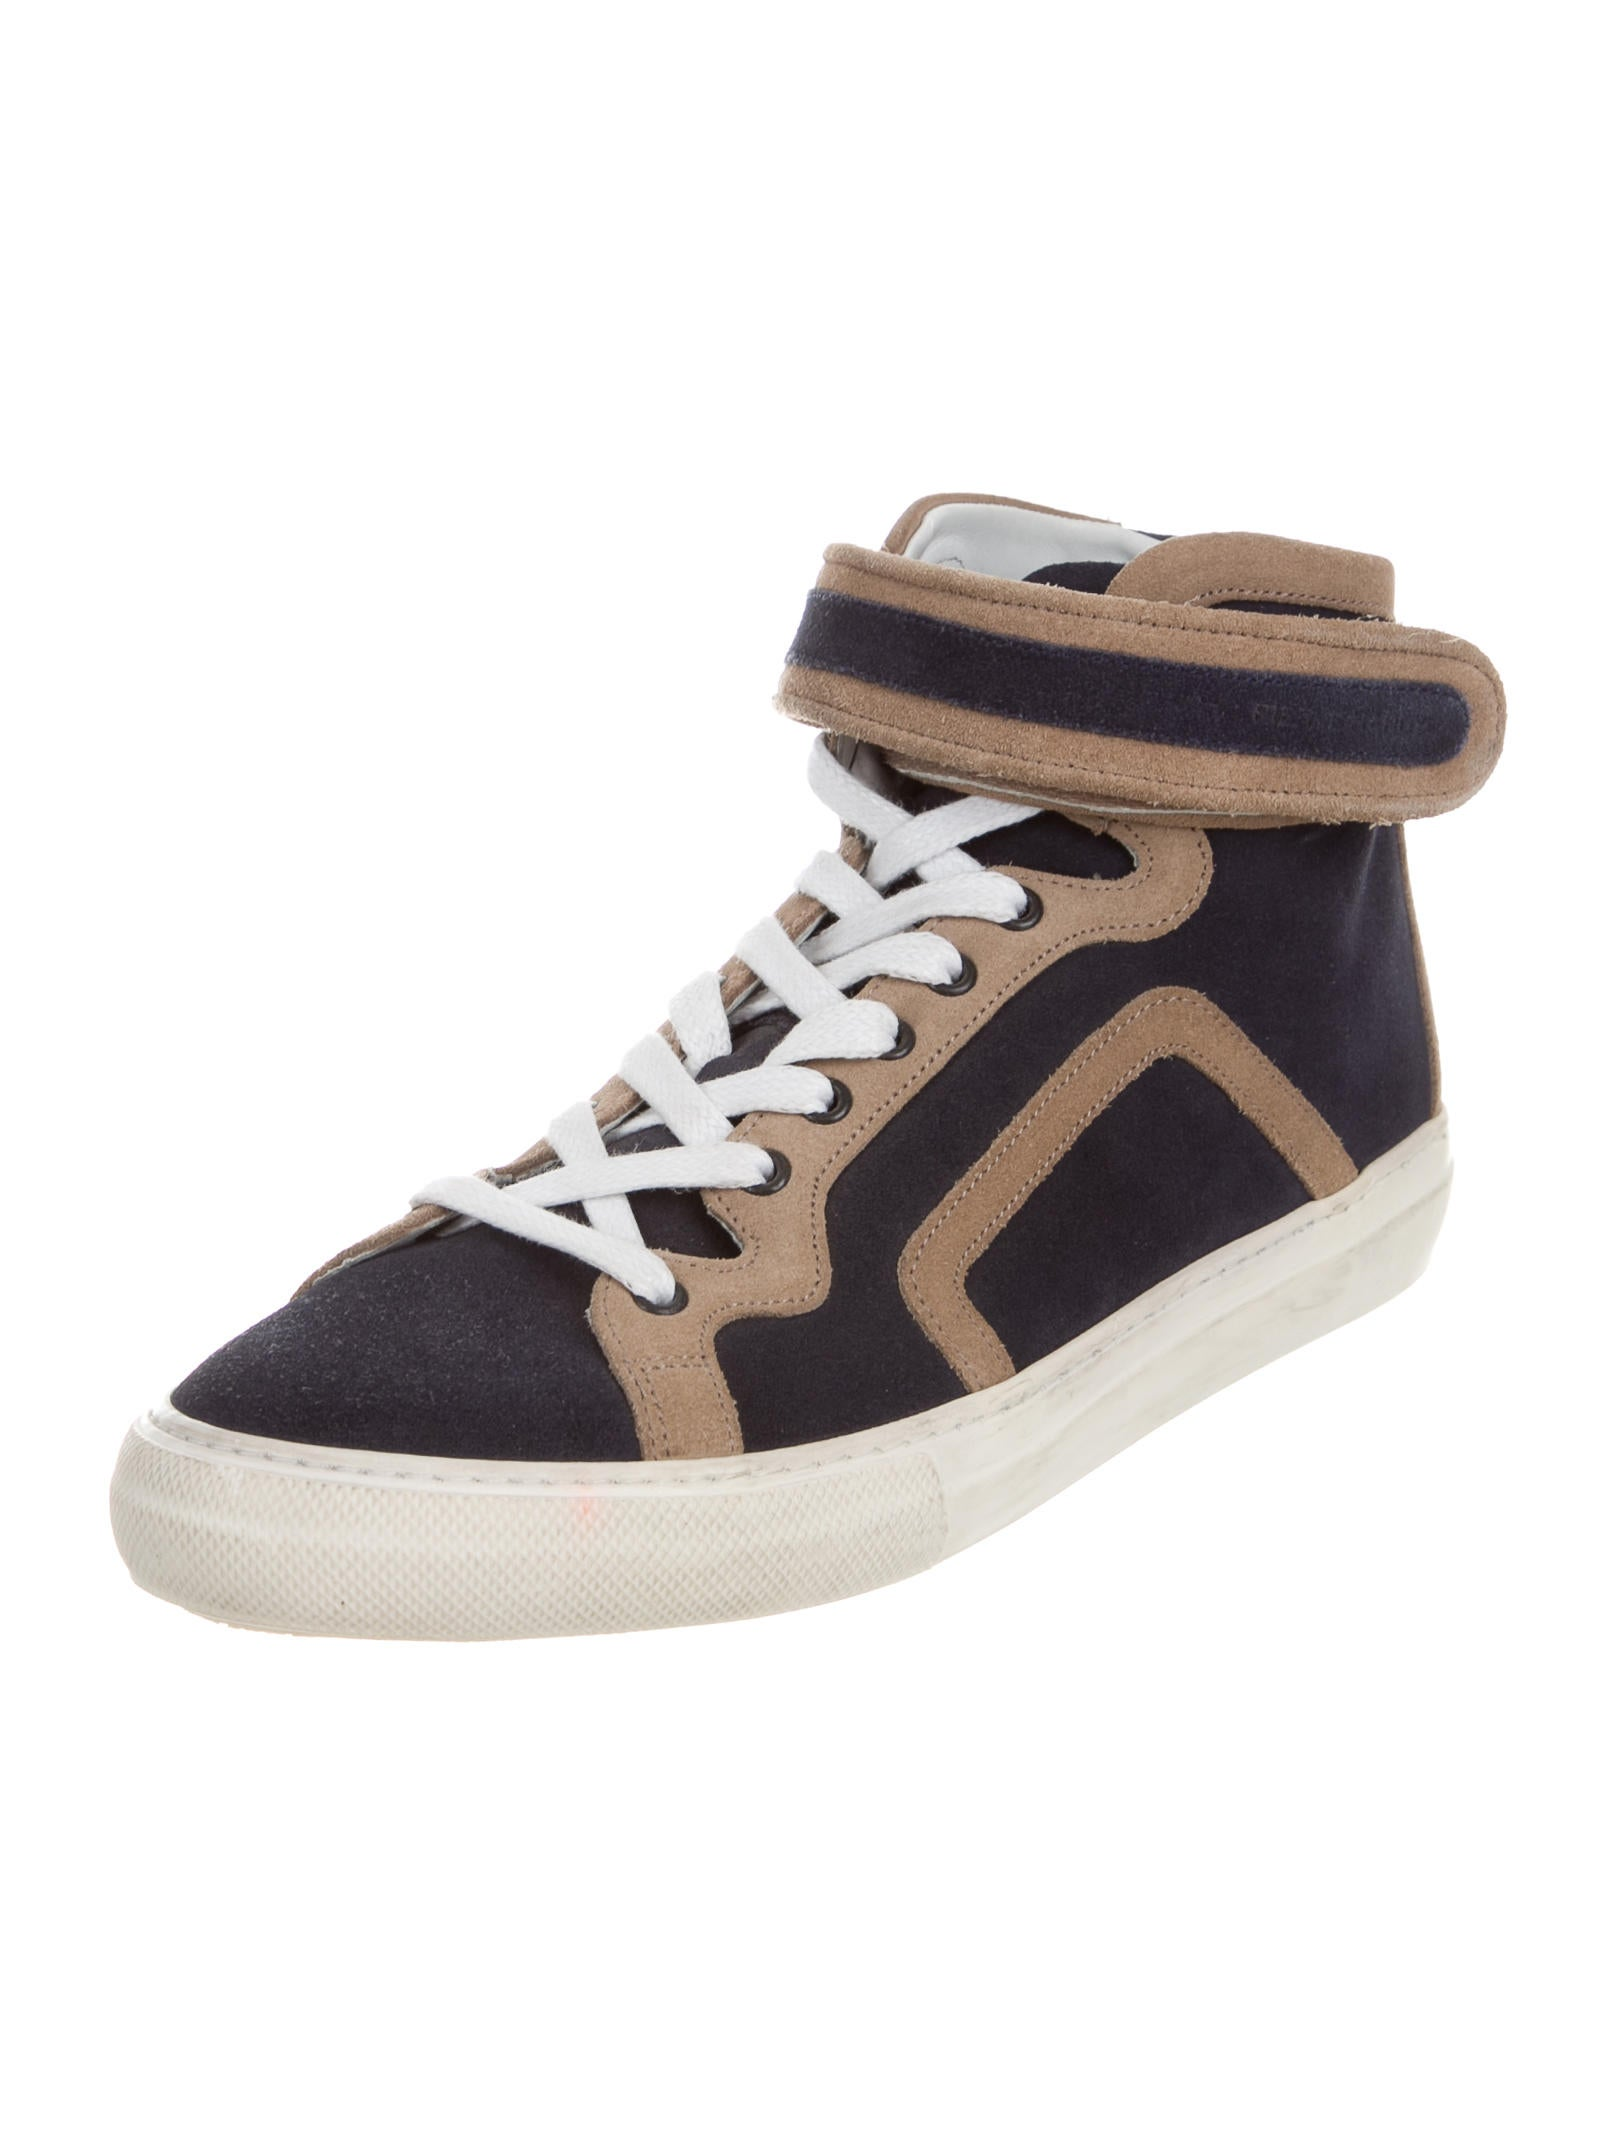 pierre hardy suede colorblock sneakers shoes pie23893 the realreal. Black Bedroom Furniture Sets. Home Design Ideas